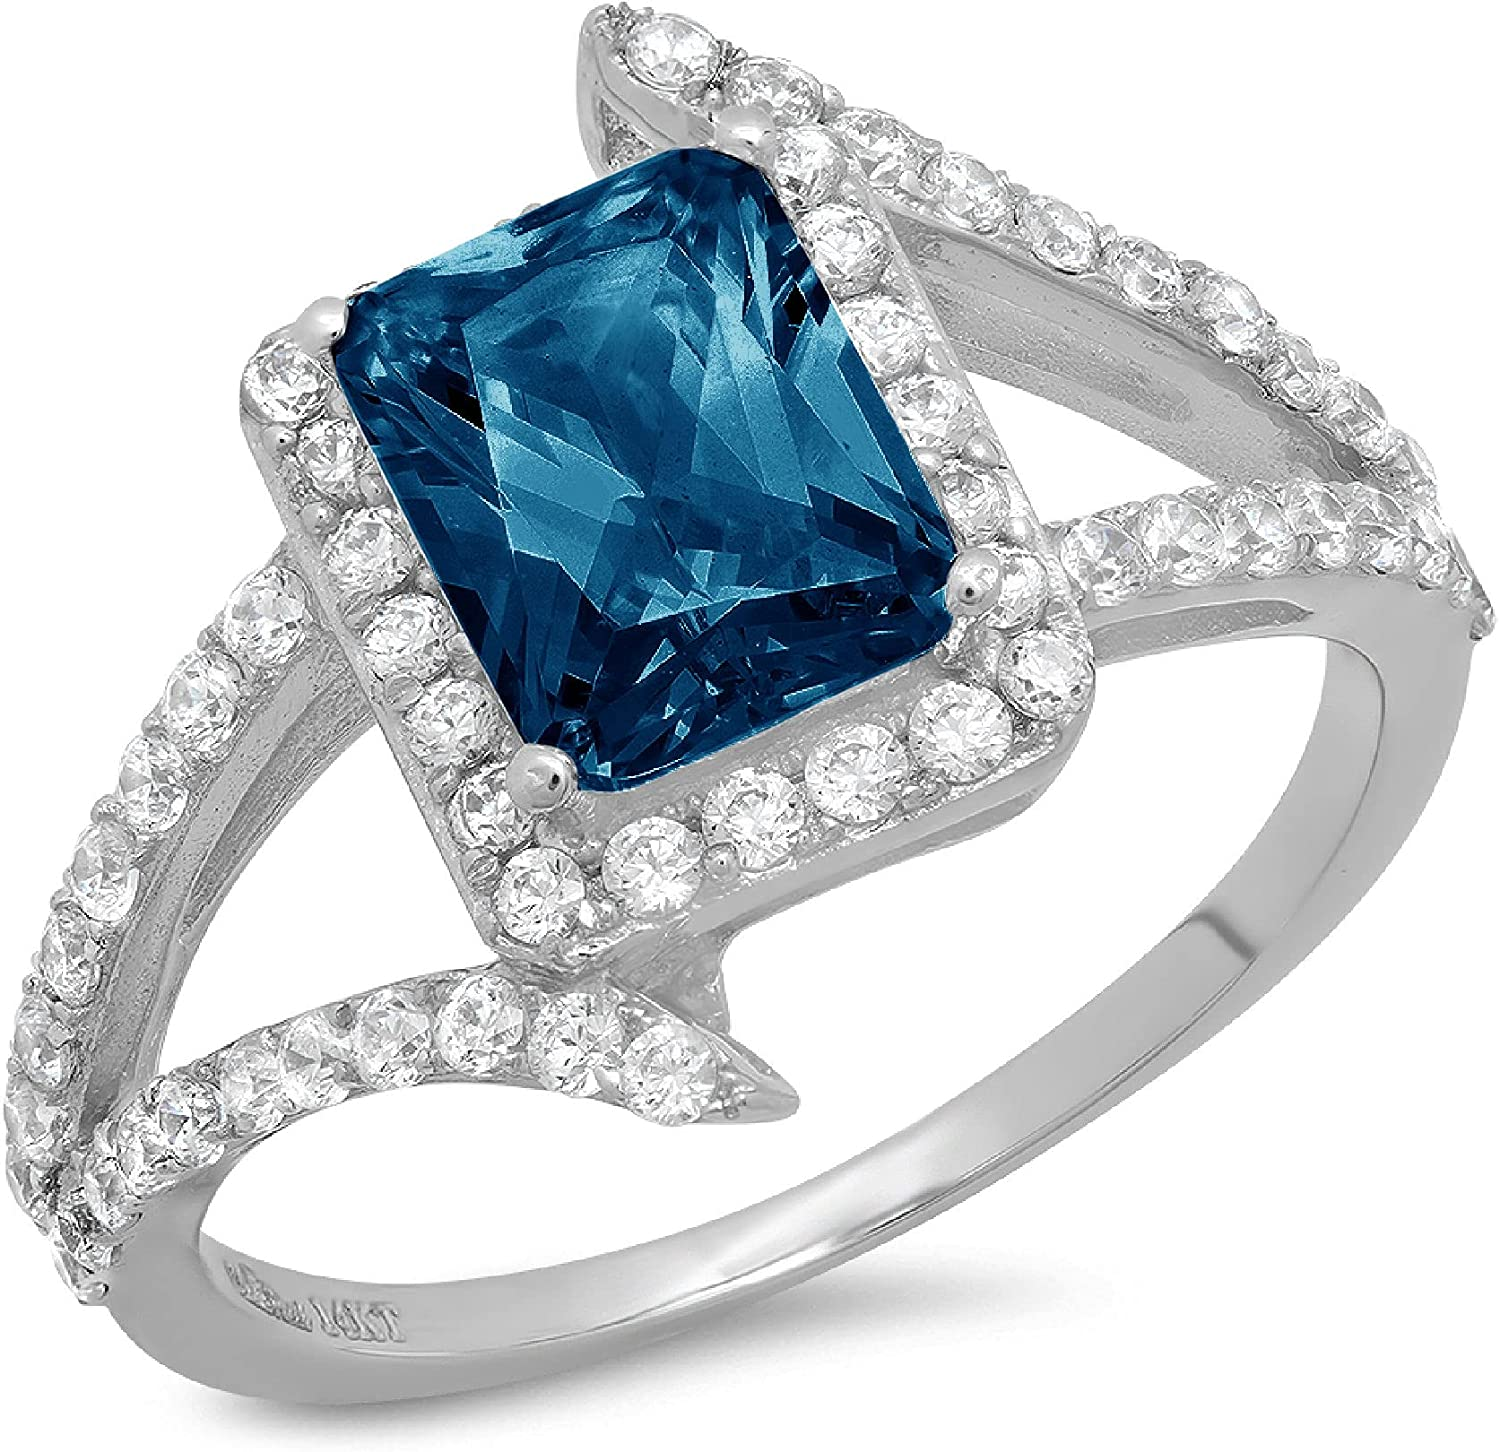 Clara Pucci 2.2 ct Emerald Cut Solitaire Accent Halo Criss Cross Stunning Genuine Flawless Natural London Blue Topaz Gem Designer Modern Statement Ring Solid 18K White Gold